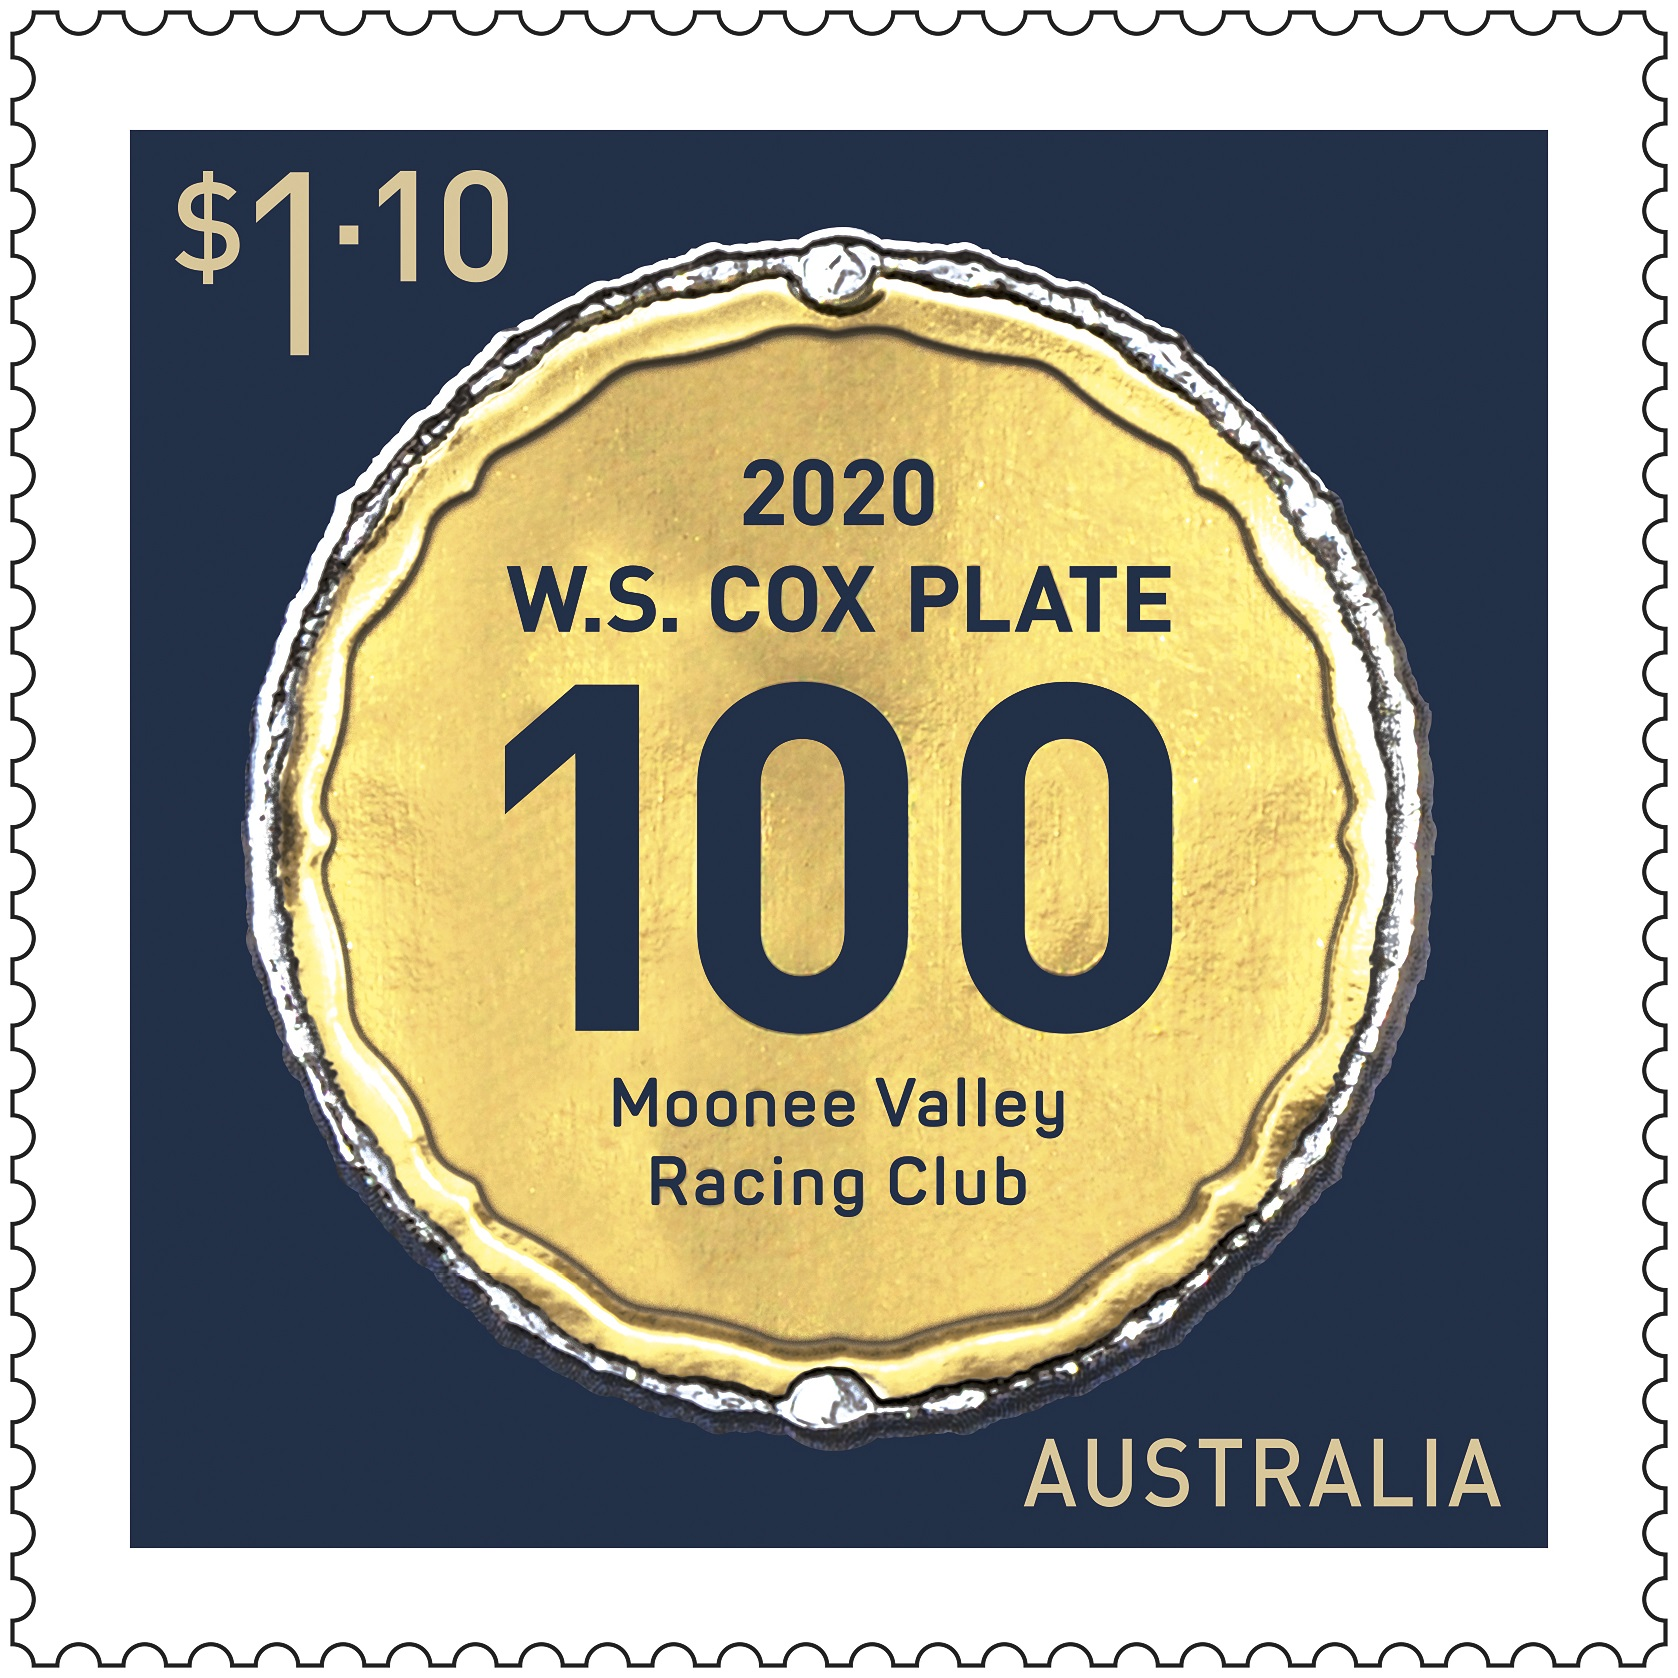 WS Cox Plate 100 Stamp